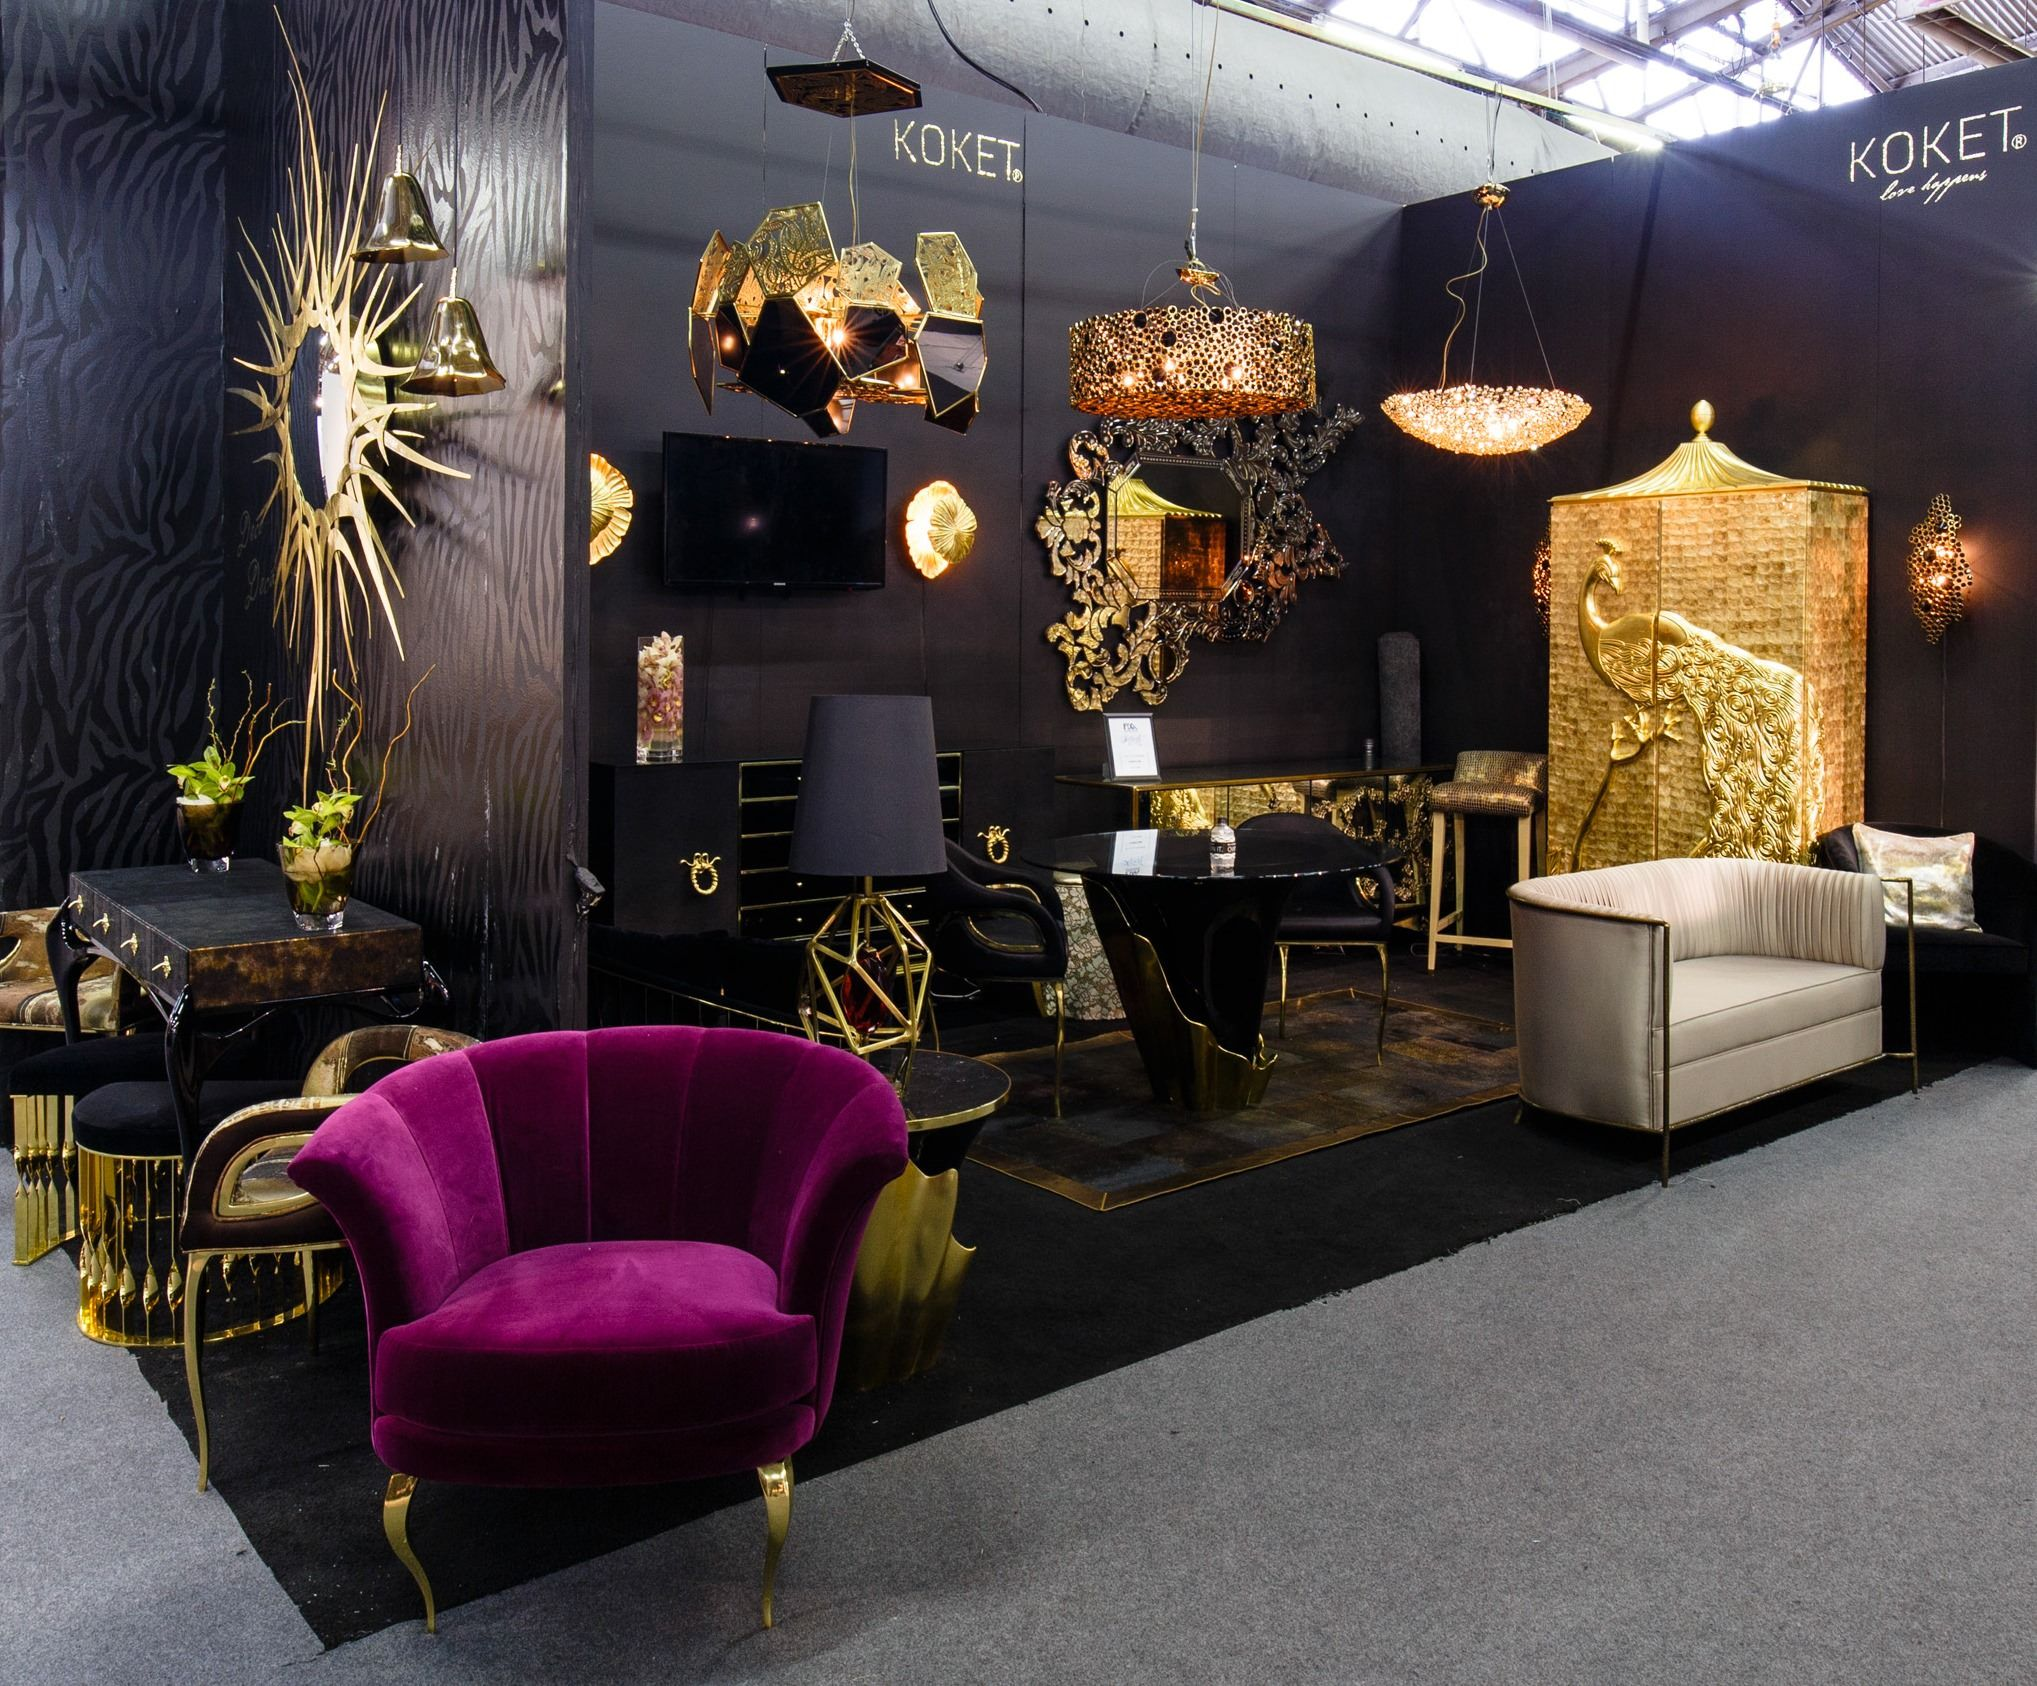 Koket From Architectural Digest Design Show 2015 Interior Design Shows Modern Home Interior Design Interior Design